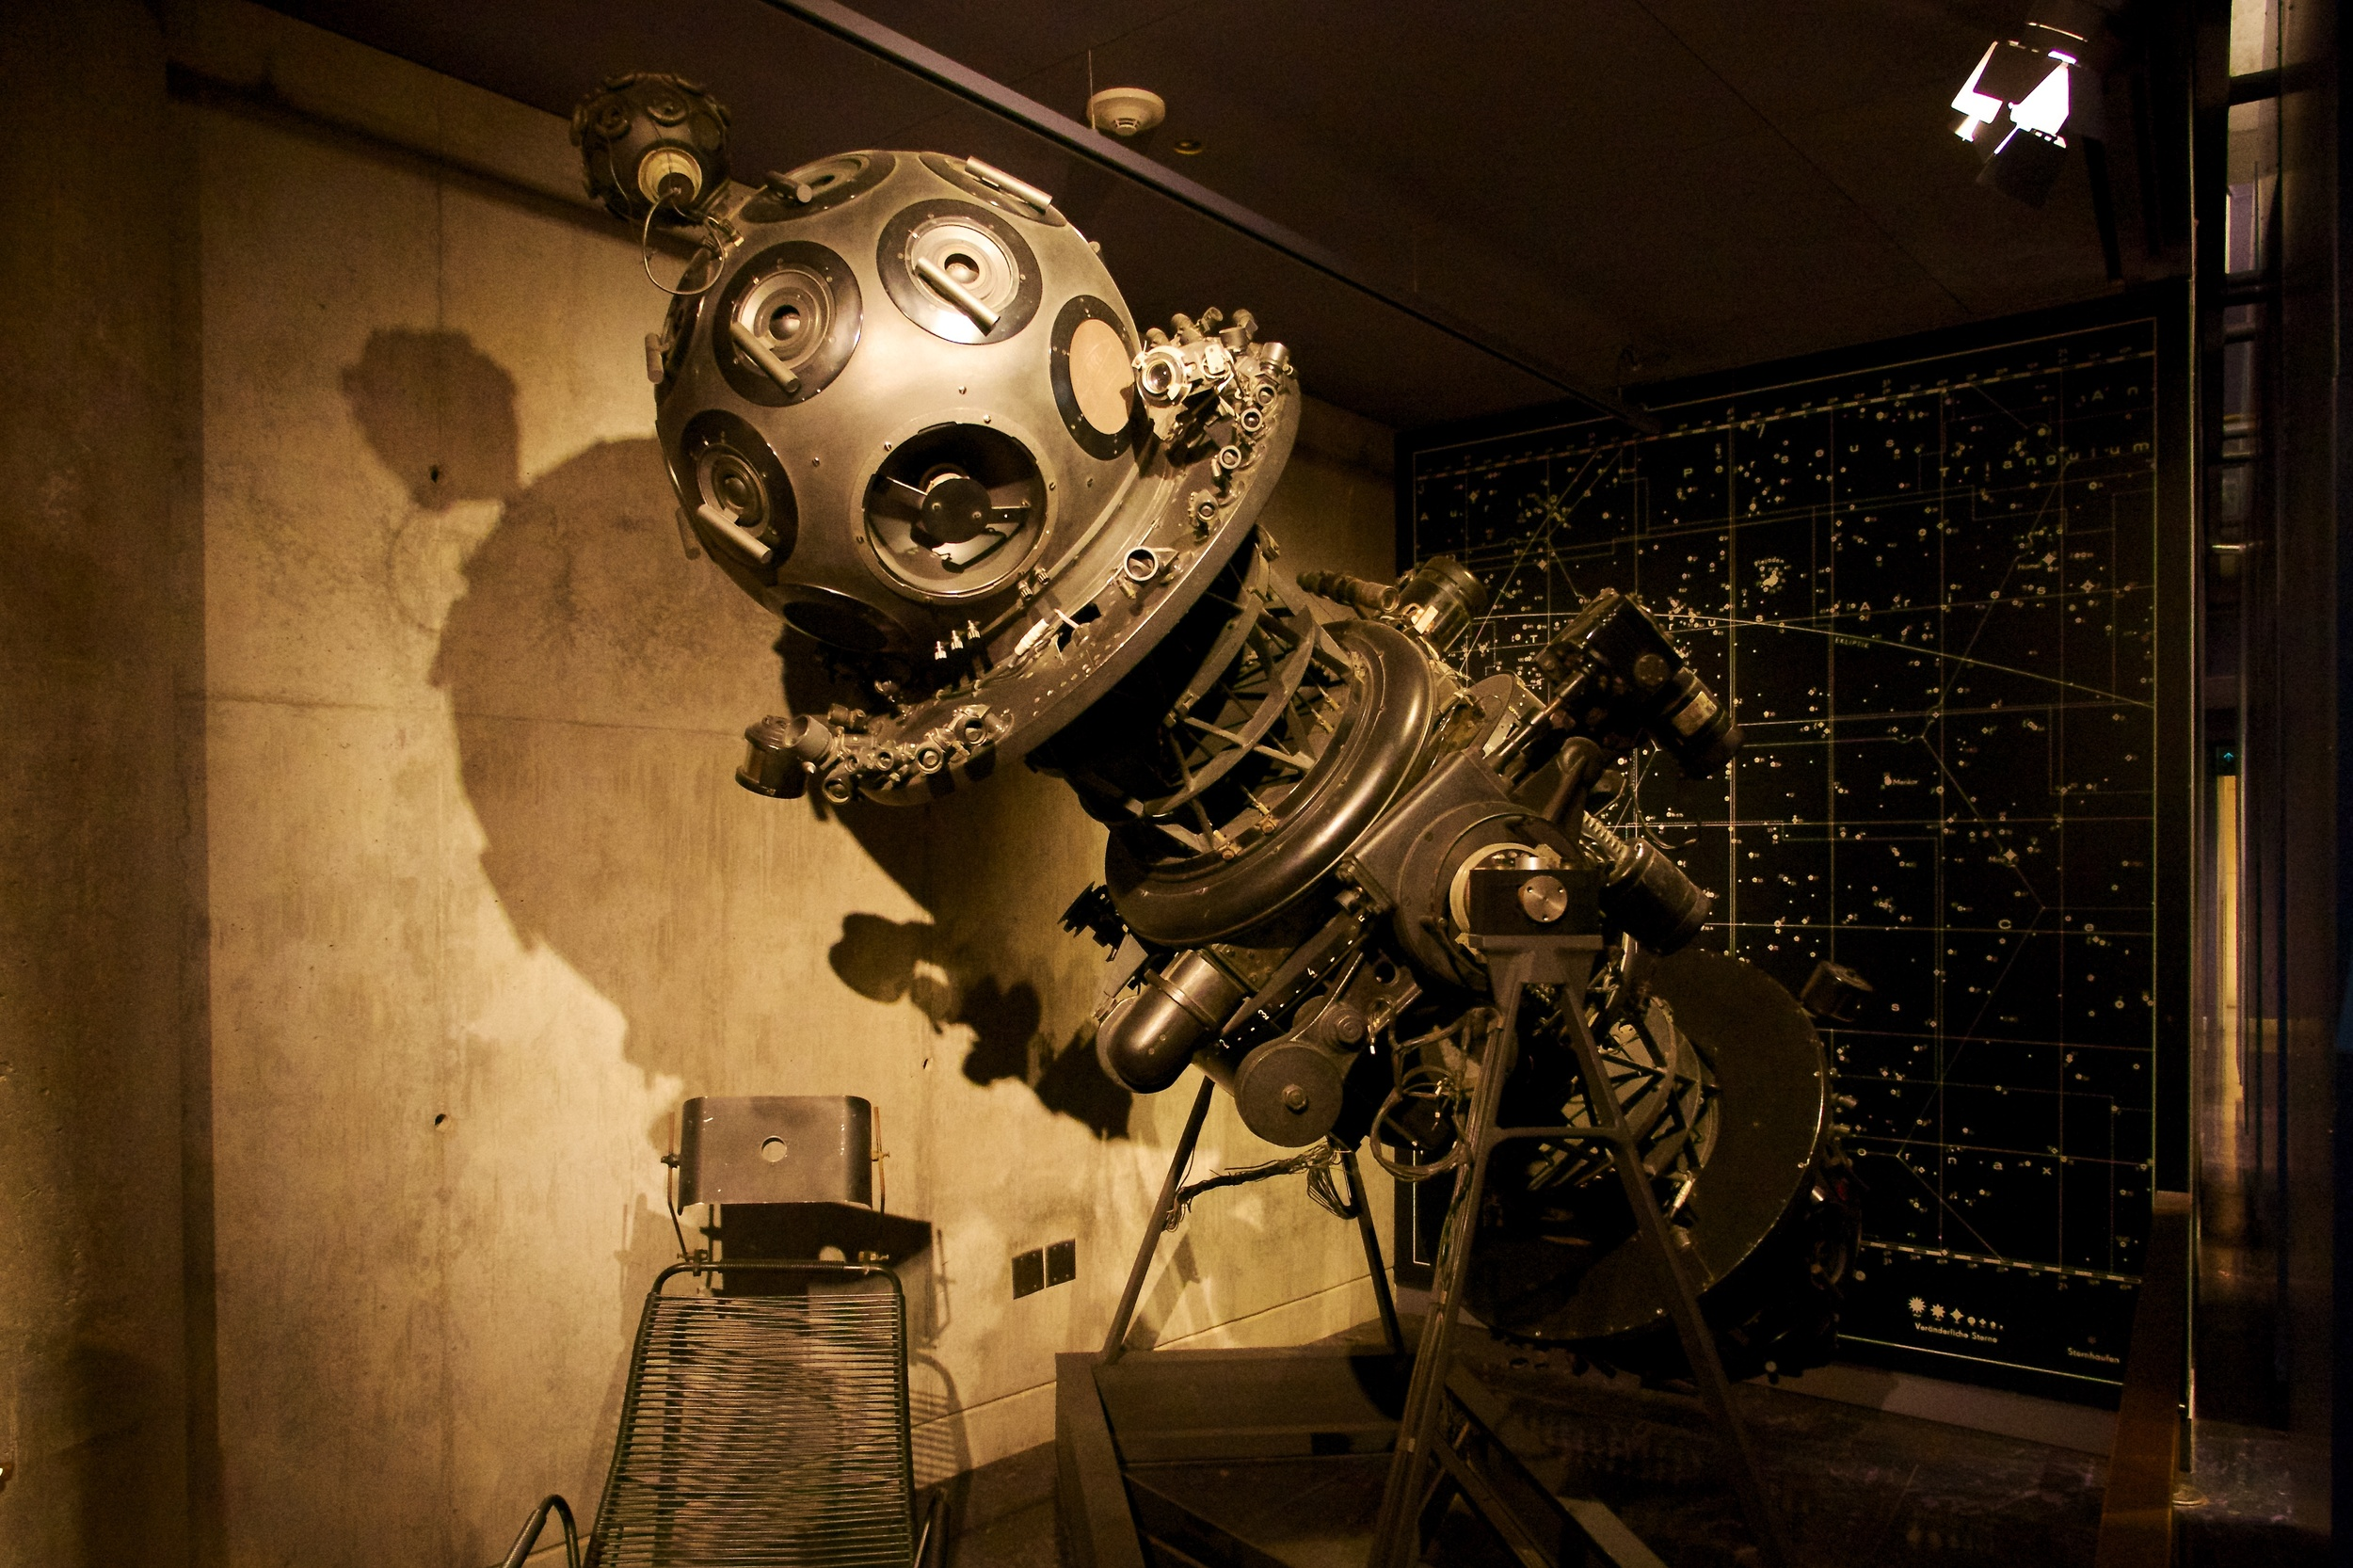 The original star projector, which was in use from 1964through beginning of renovations in 2002